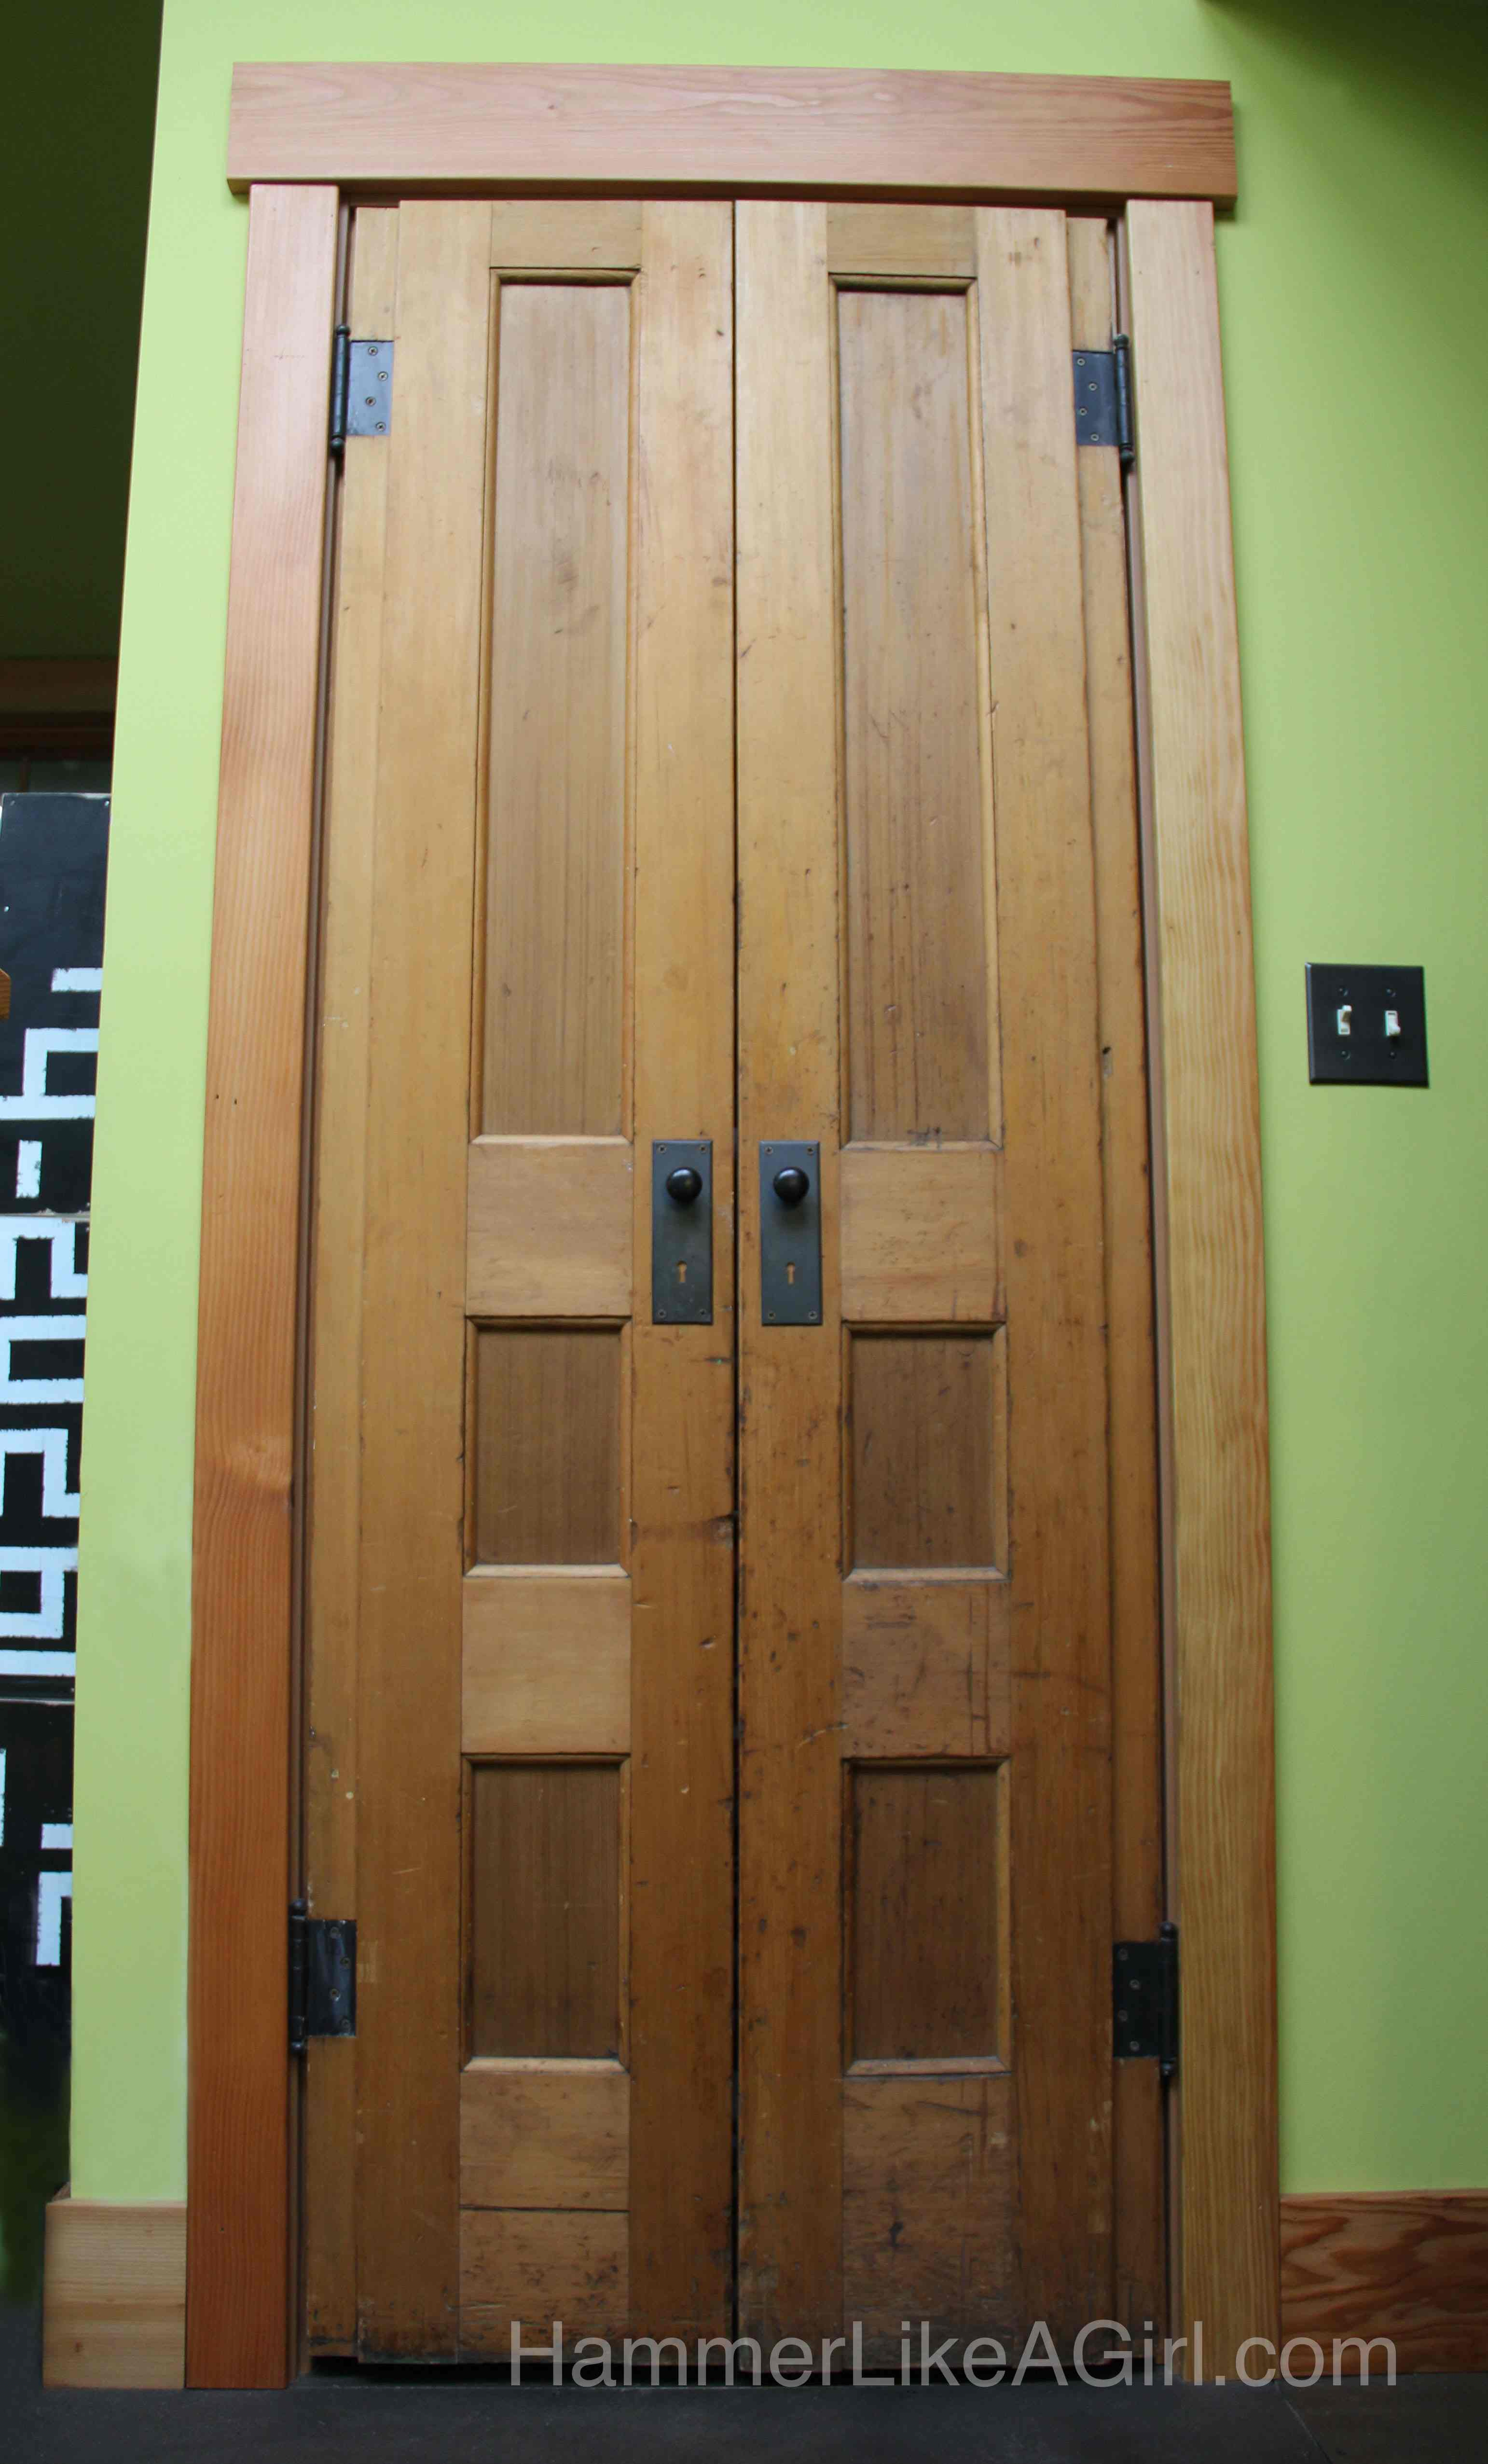 Design With Recycled Doors